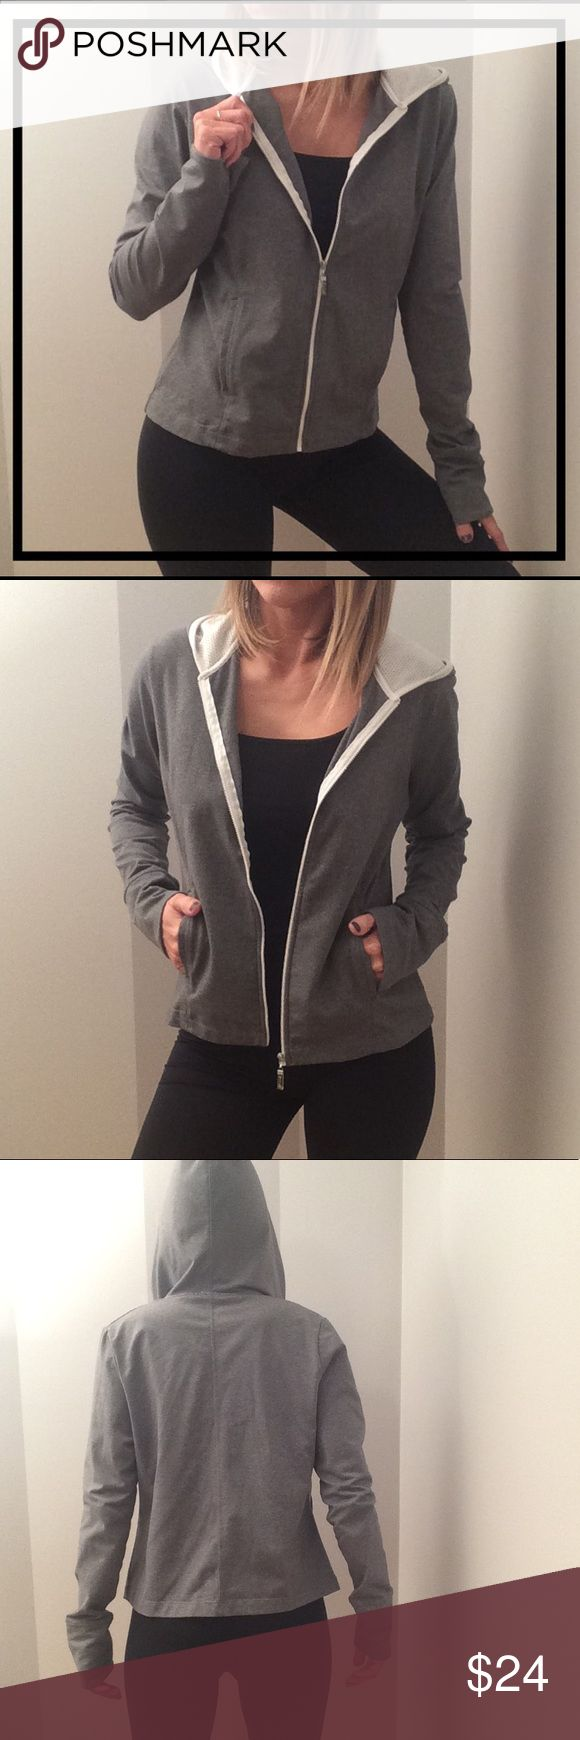 Gray Athletic Jacket Hoodie GREAT CONDITION! Like New. Champion Elite Jackets & Coats